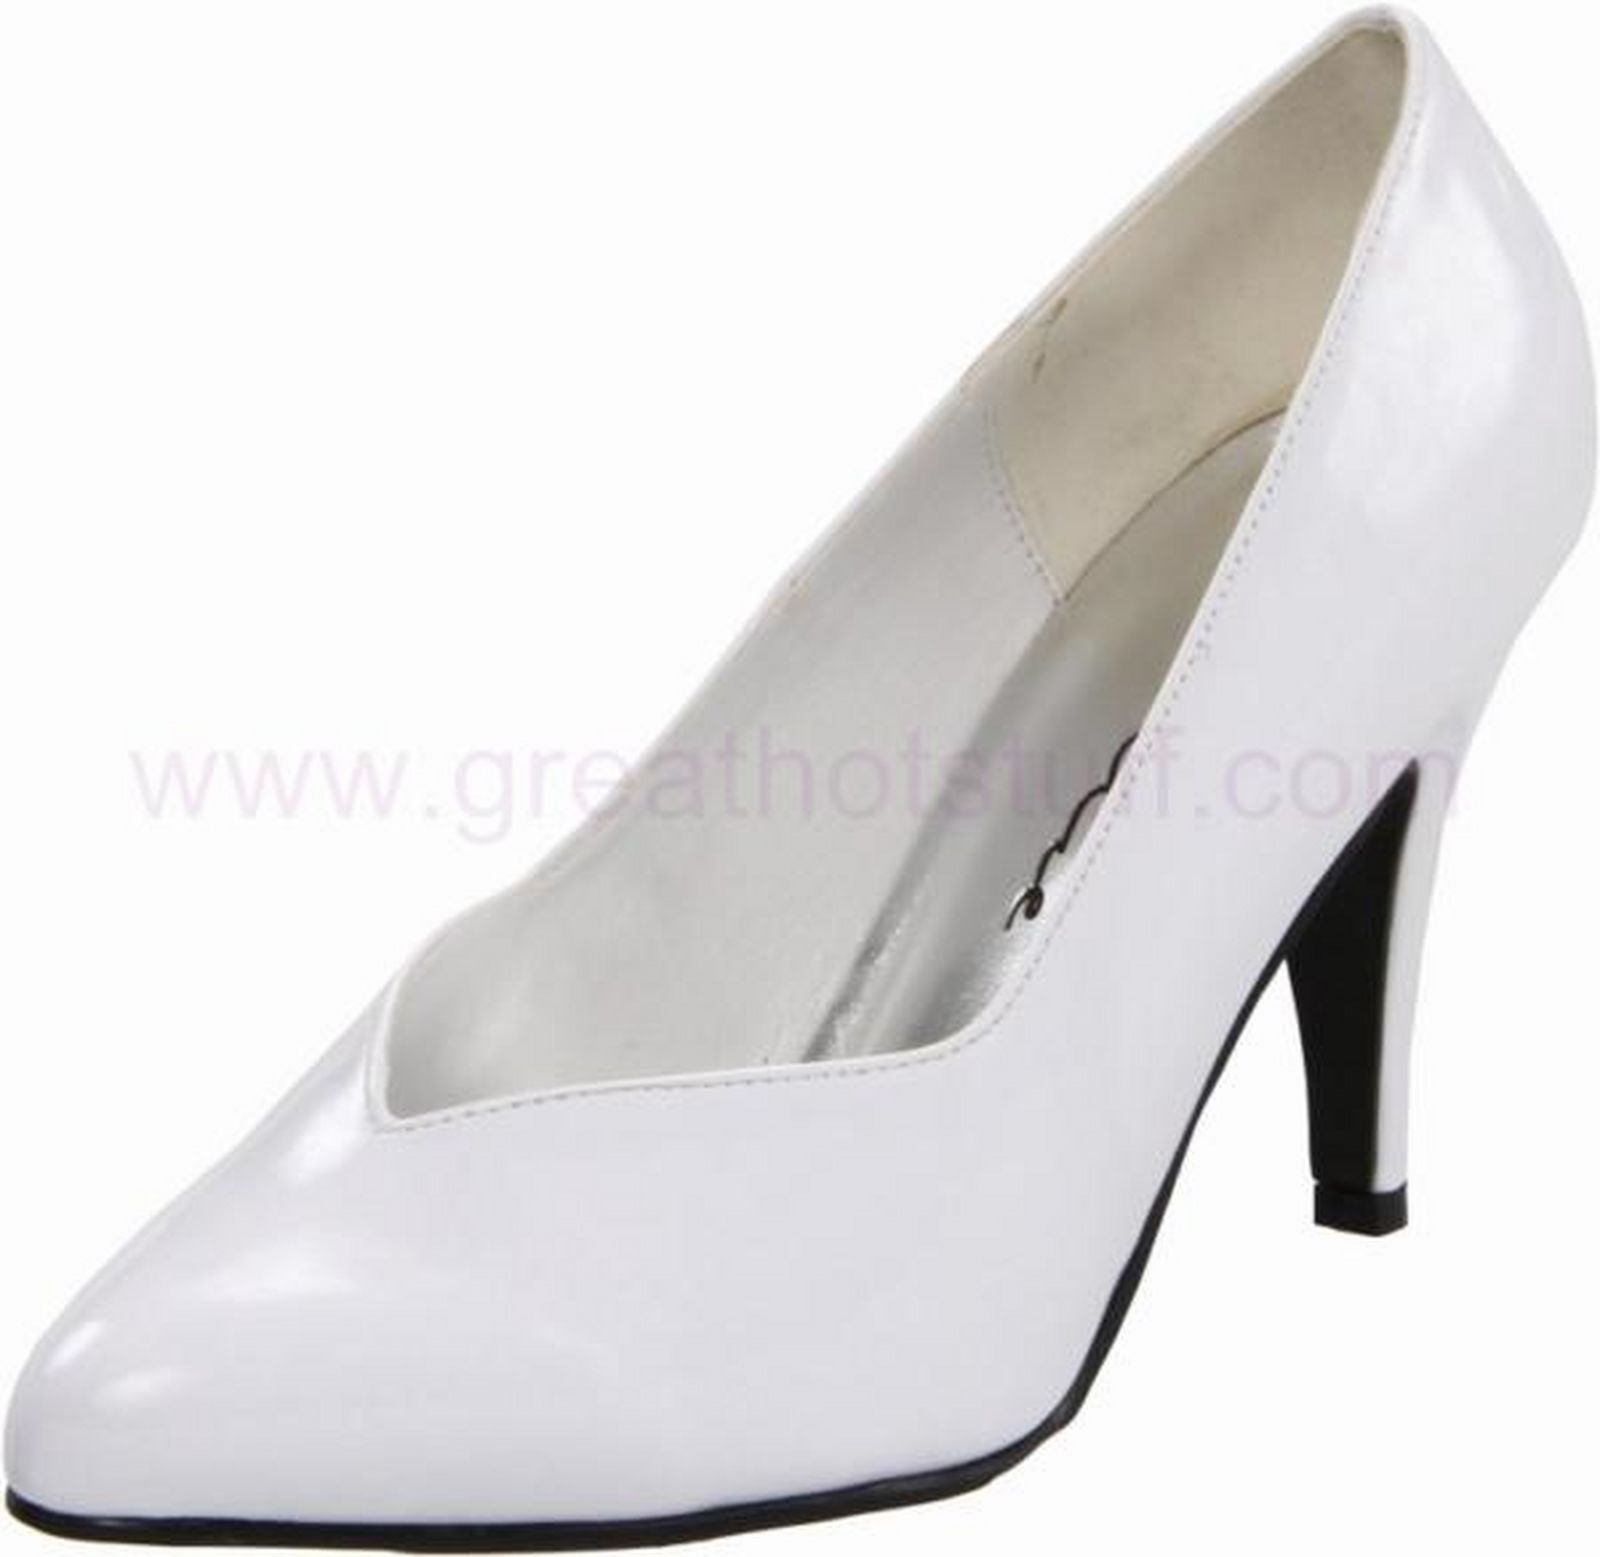 Ellie Shoes 620-AMADA-L 5 Inch Curvacious Pump With Lace And Bow